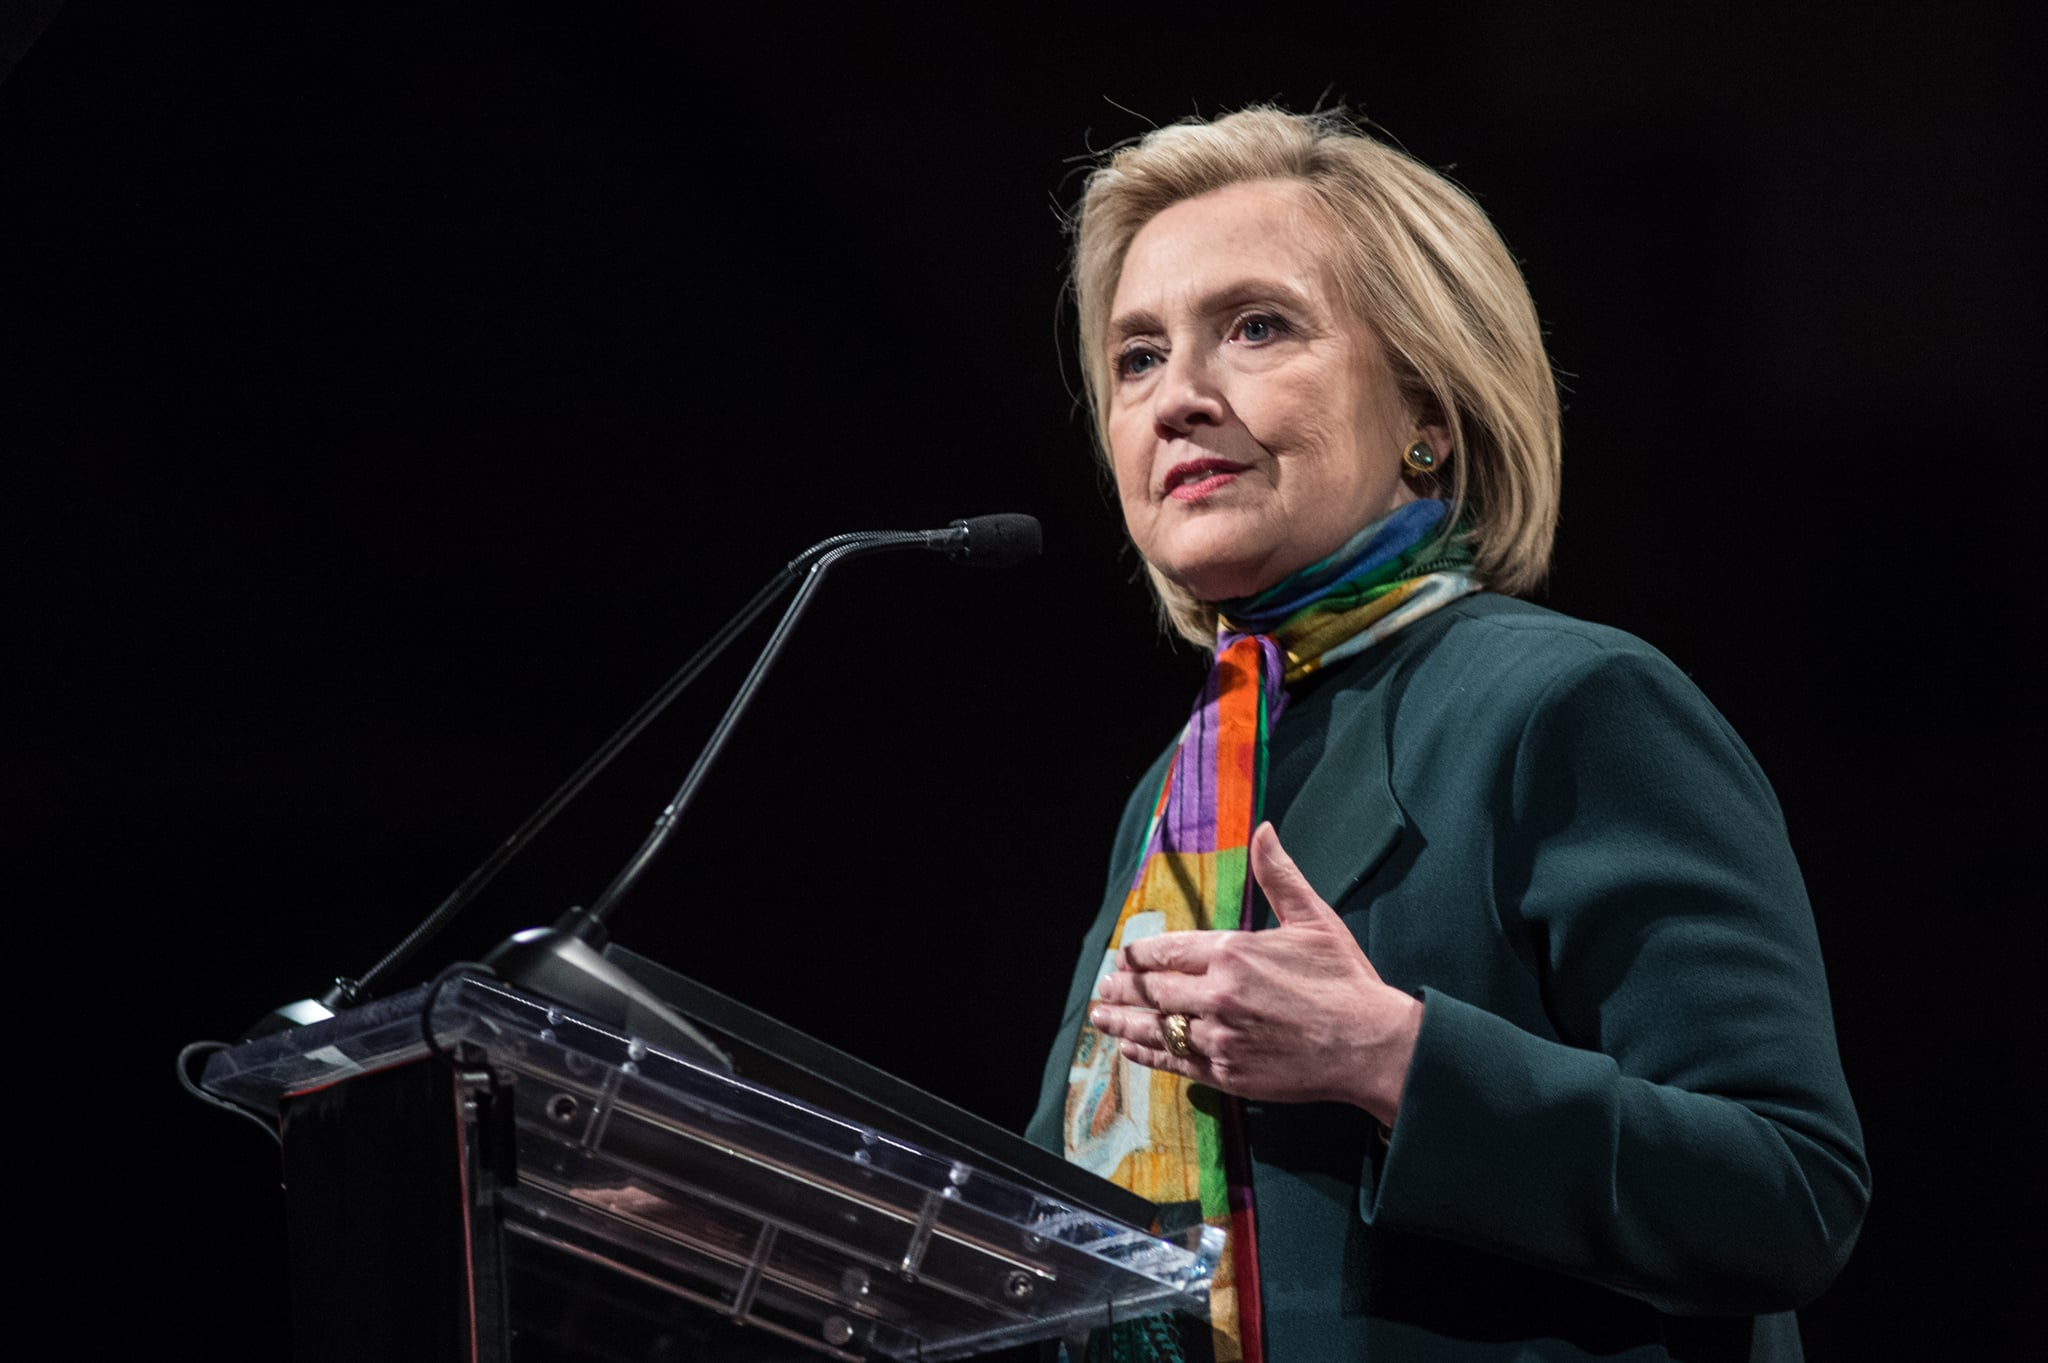 NEW YORK, NY - APRIL 22:  Hillary Clinton speaks at the 14th Annual PEN World Voices Festival at The Great Hall at Cooper Union on April 22, 2018 in New York City.  (Photo by Mark Sagliocco/Getty Images)